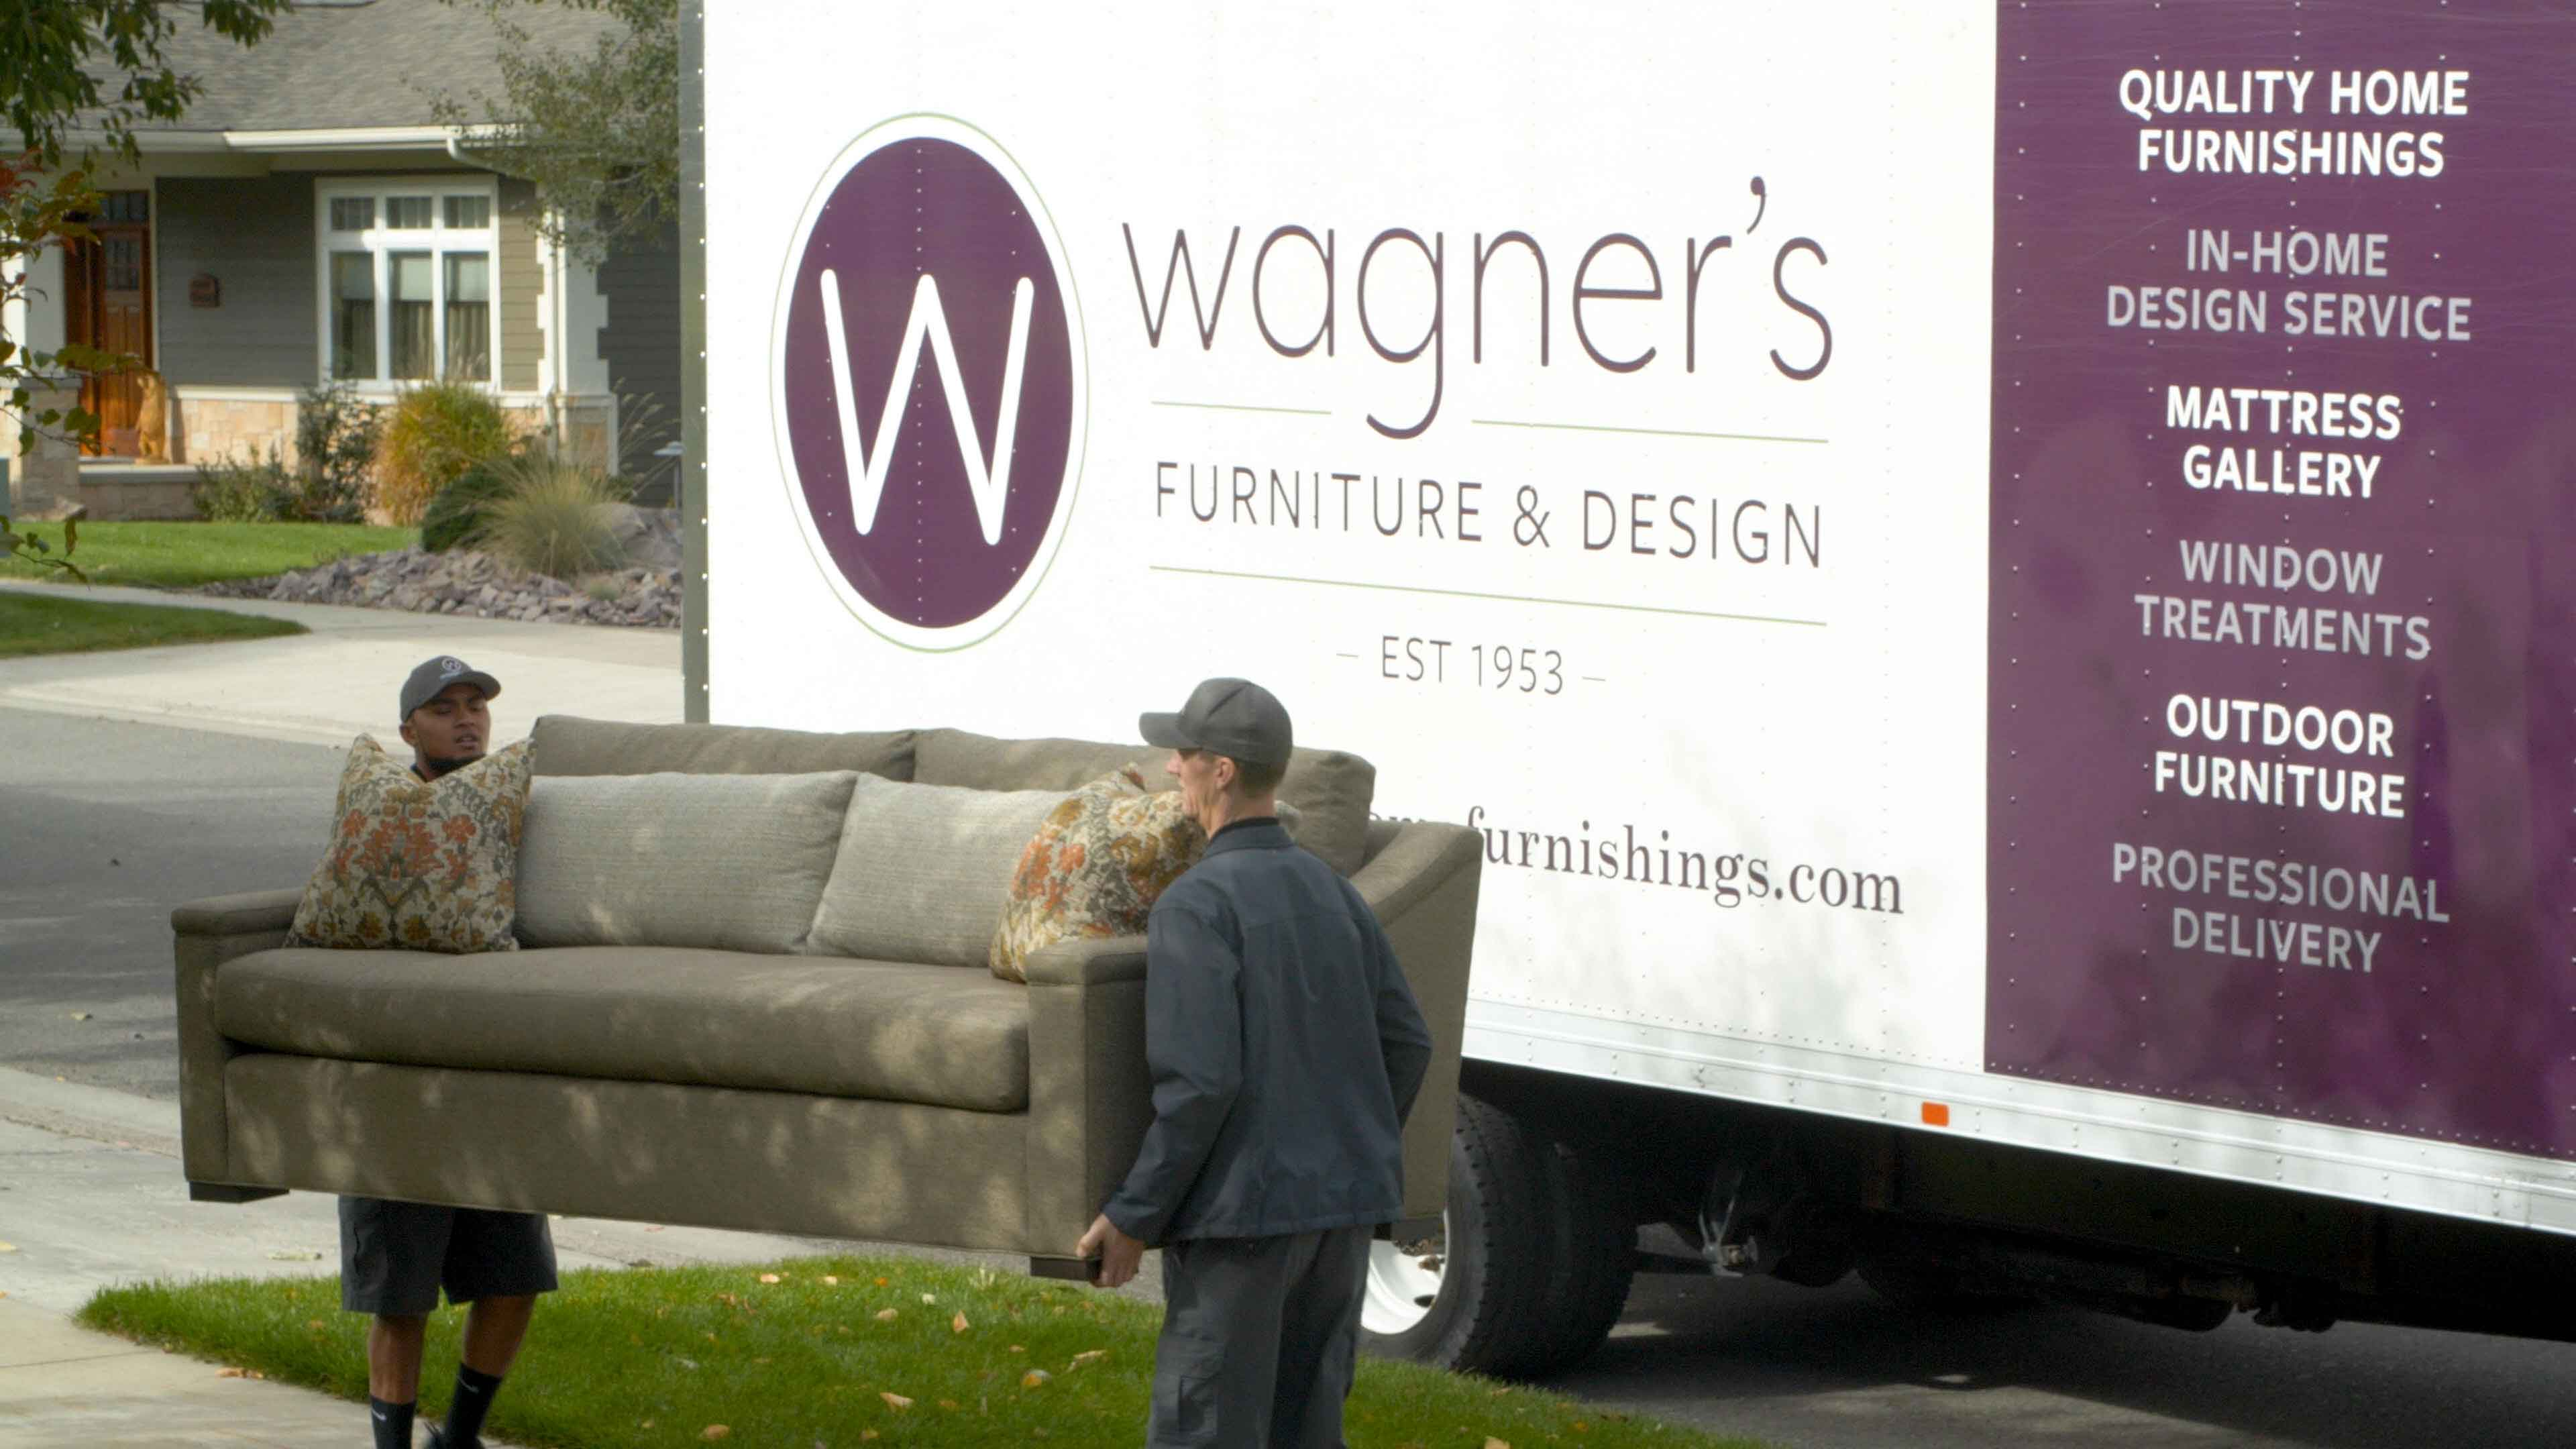 Wagner's delivery truck being unloaded